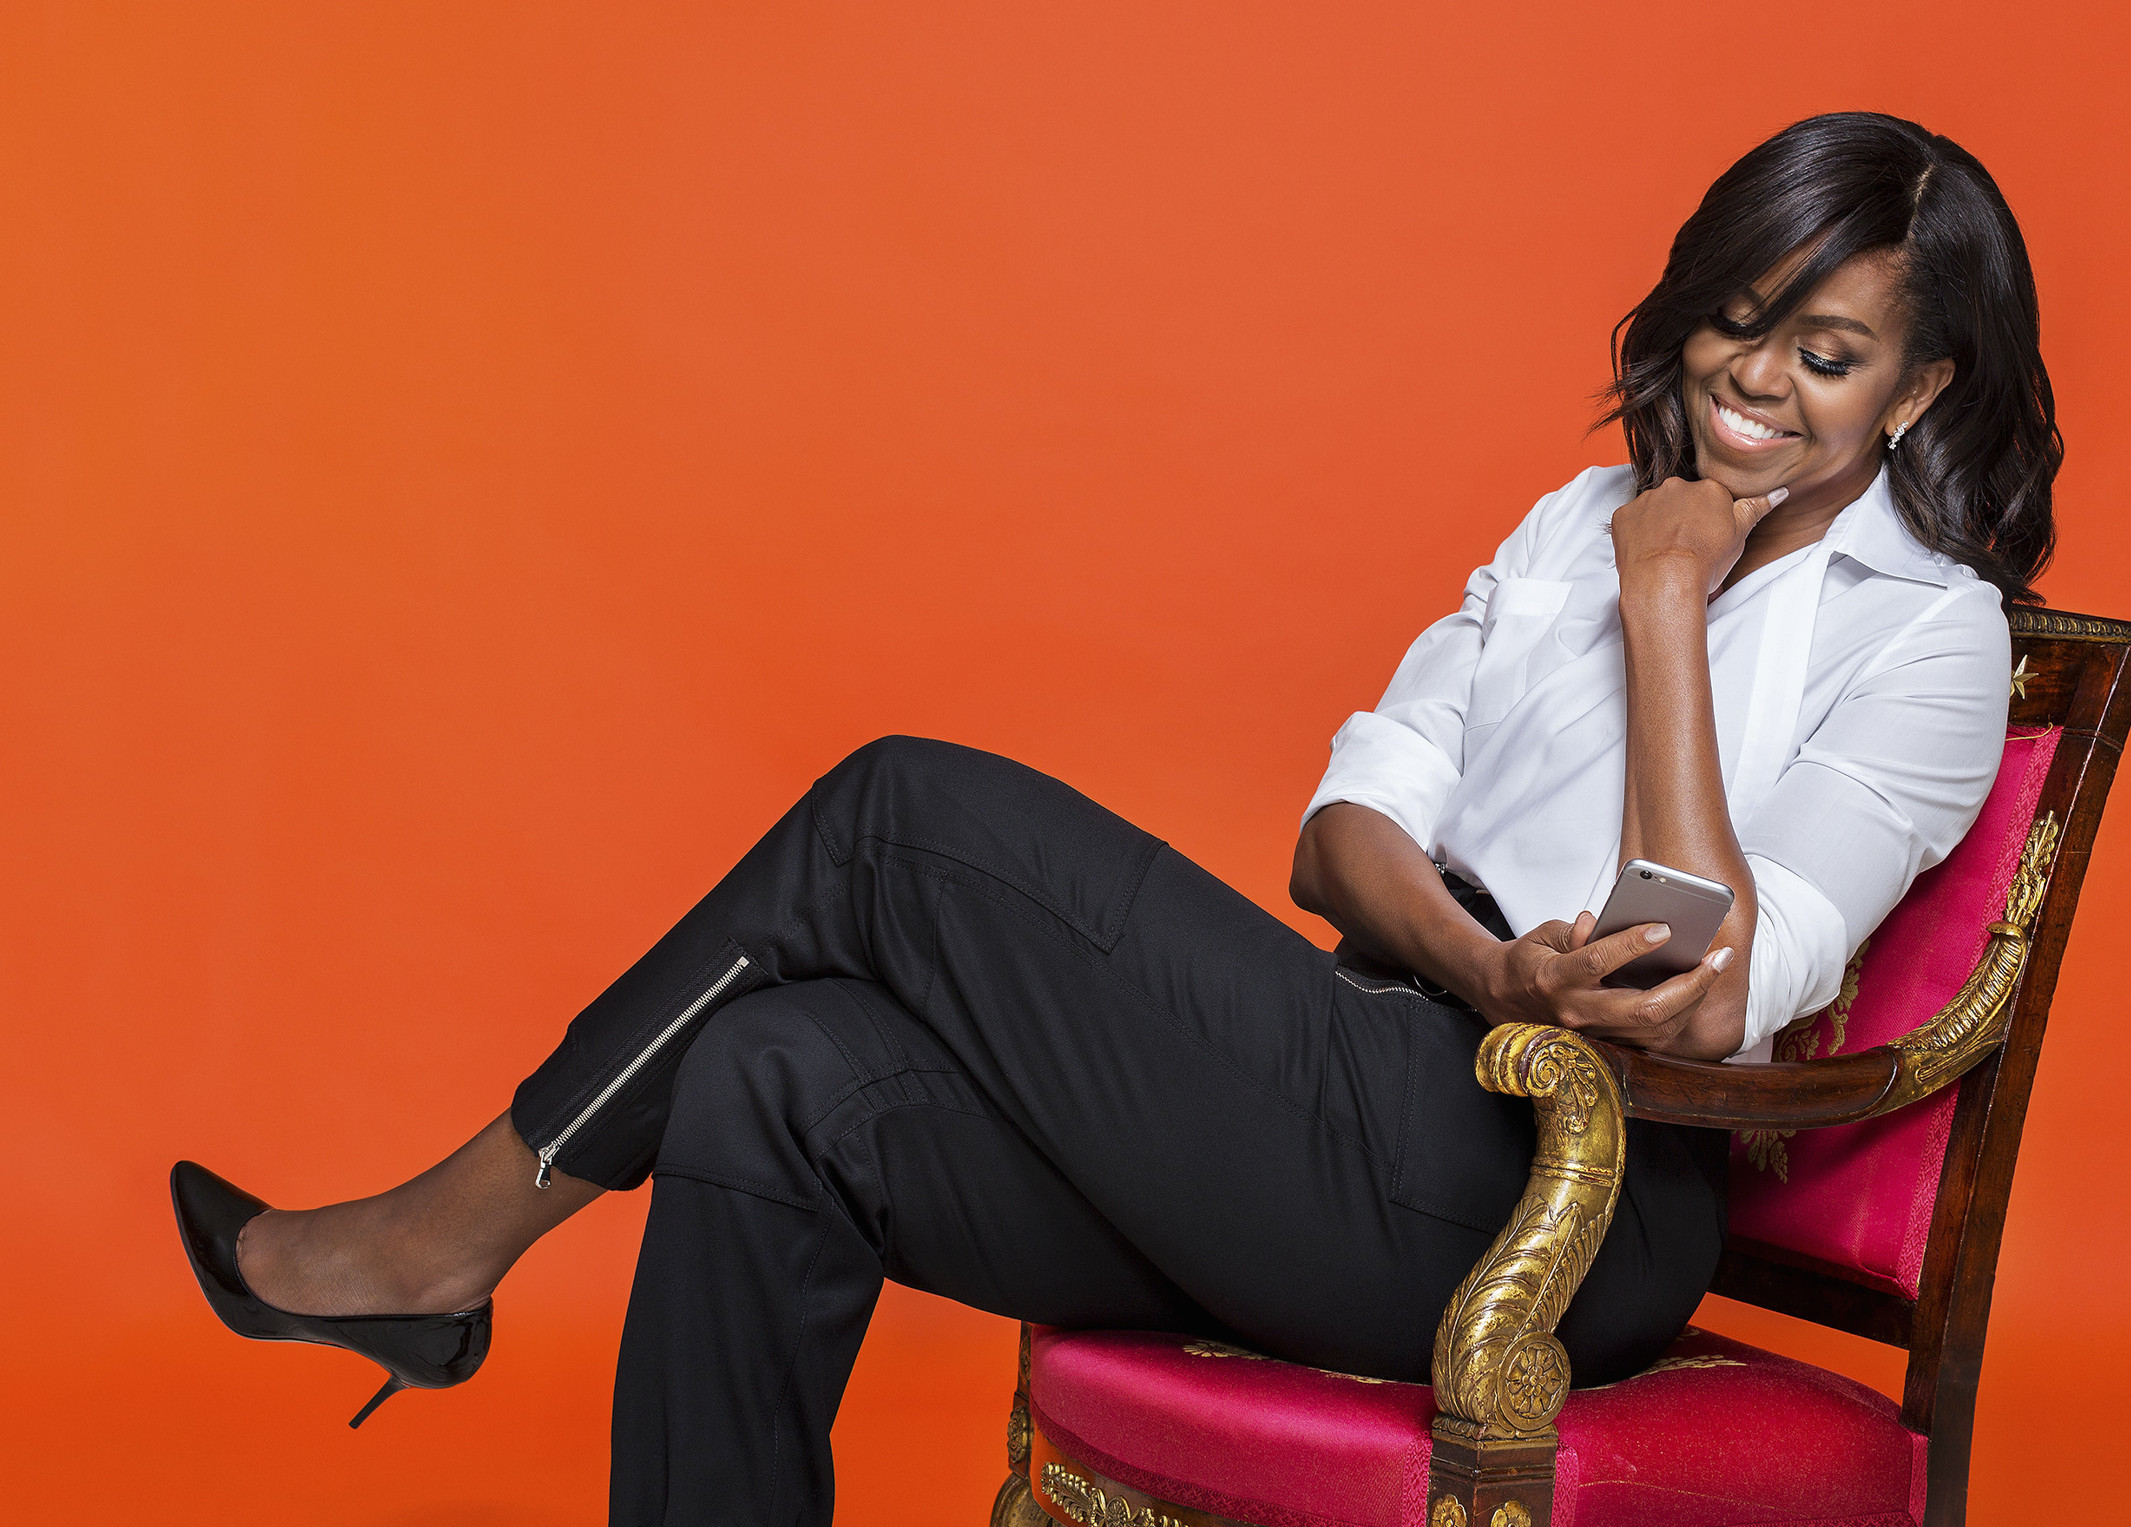 Michelle Obama para The Verge